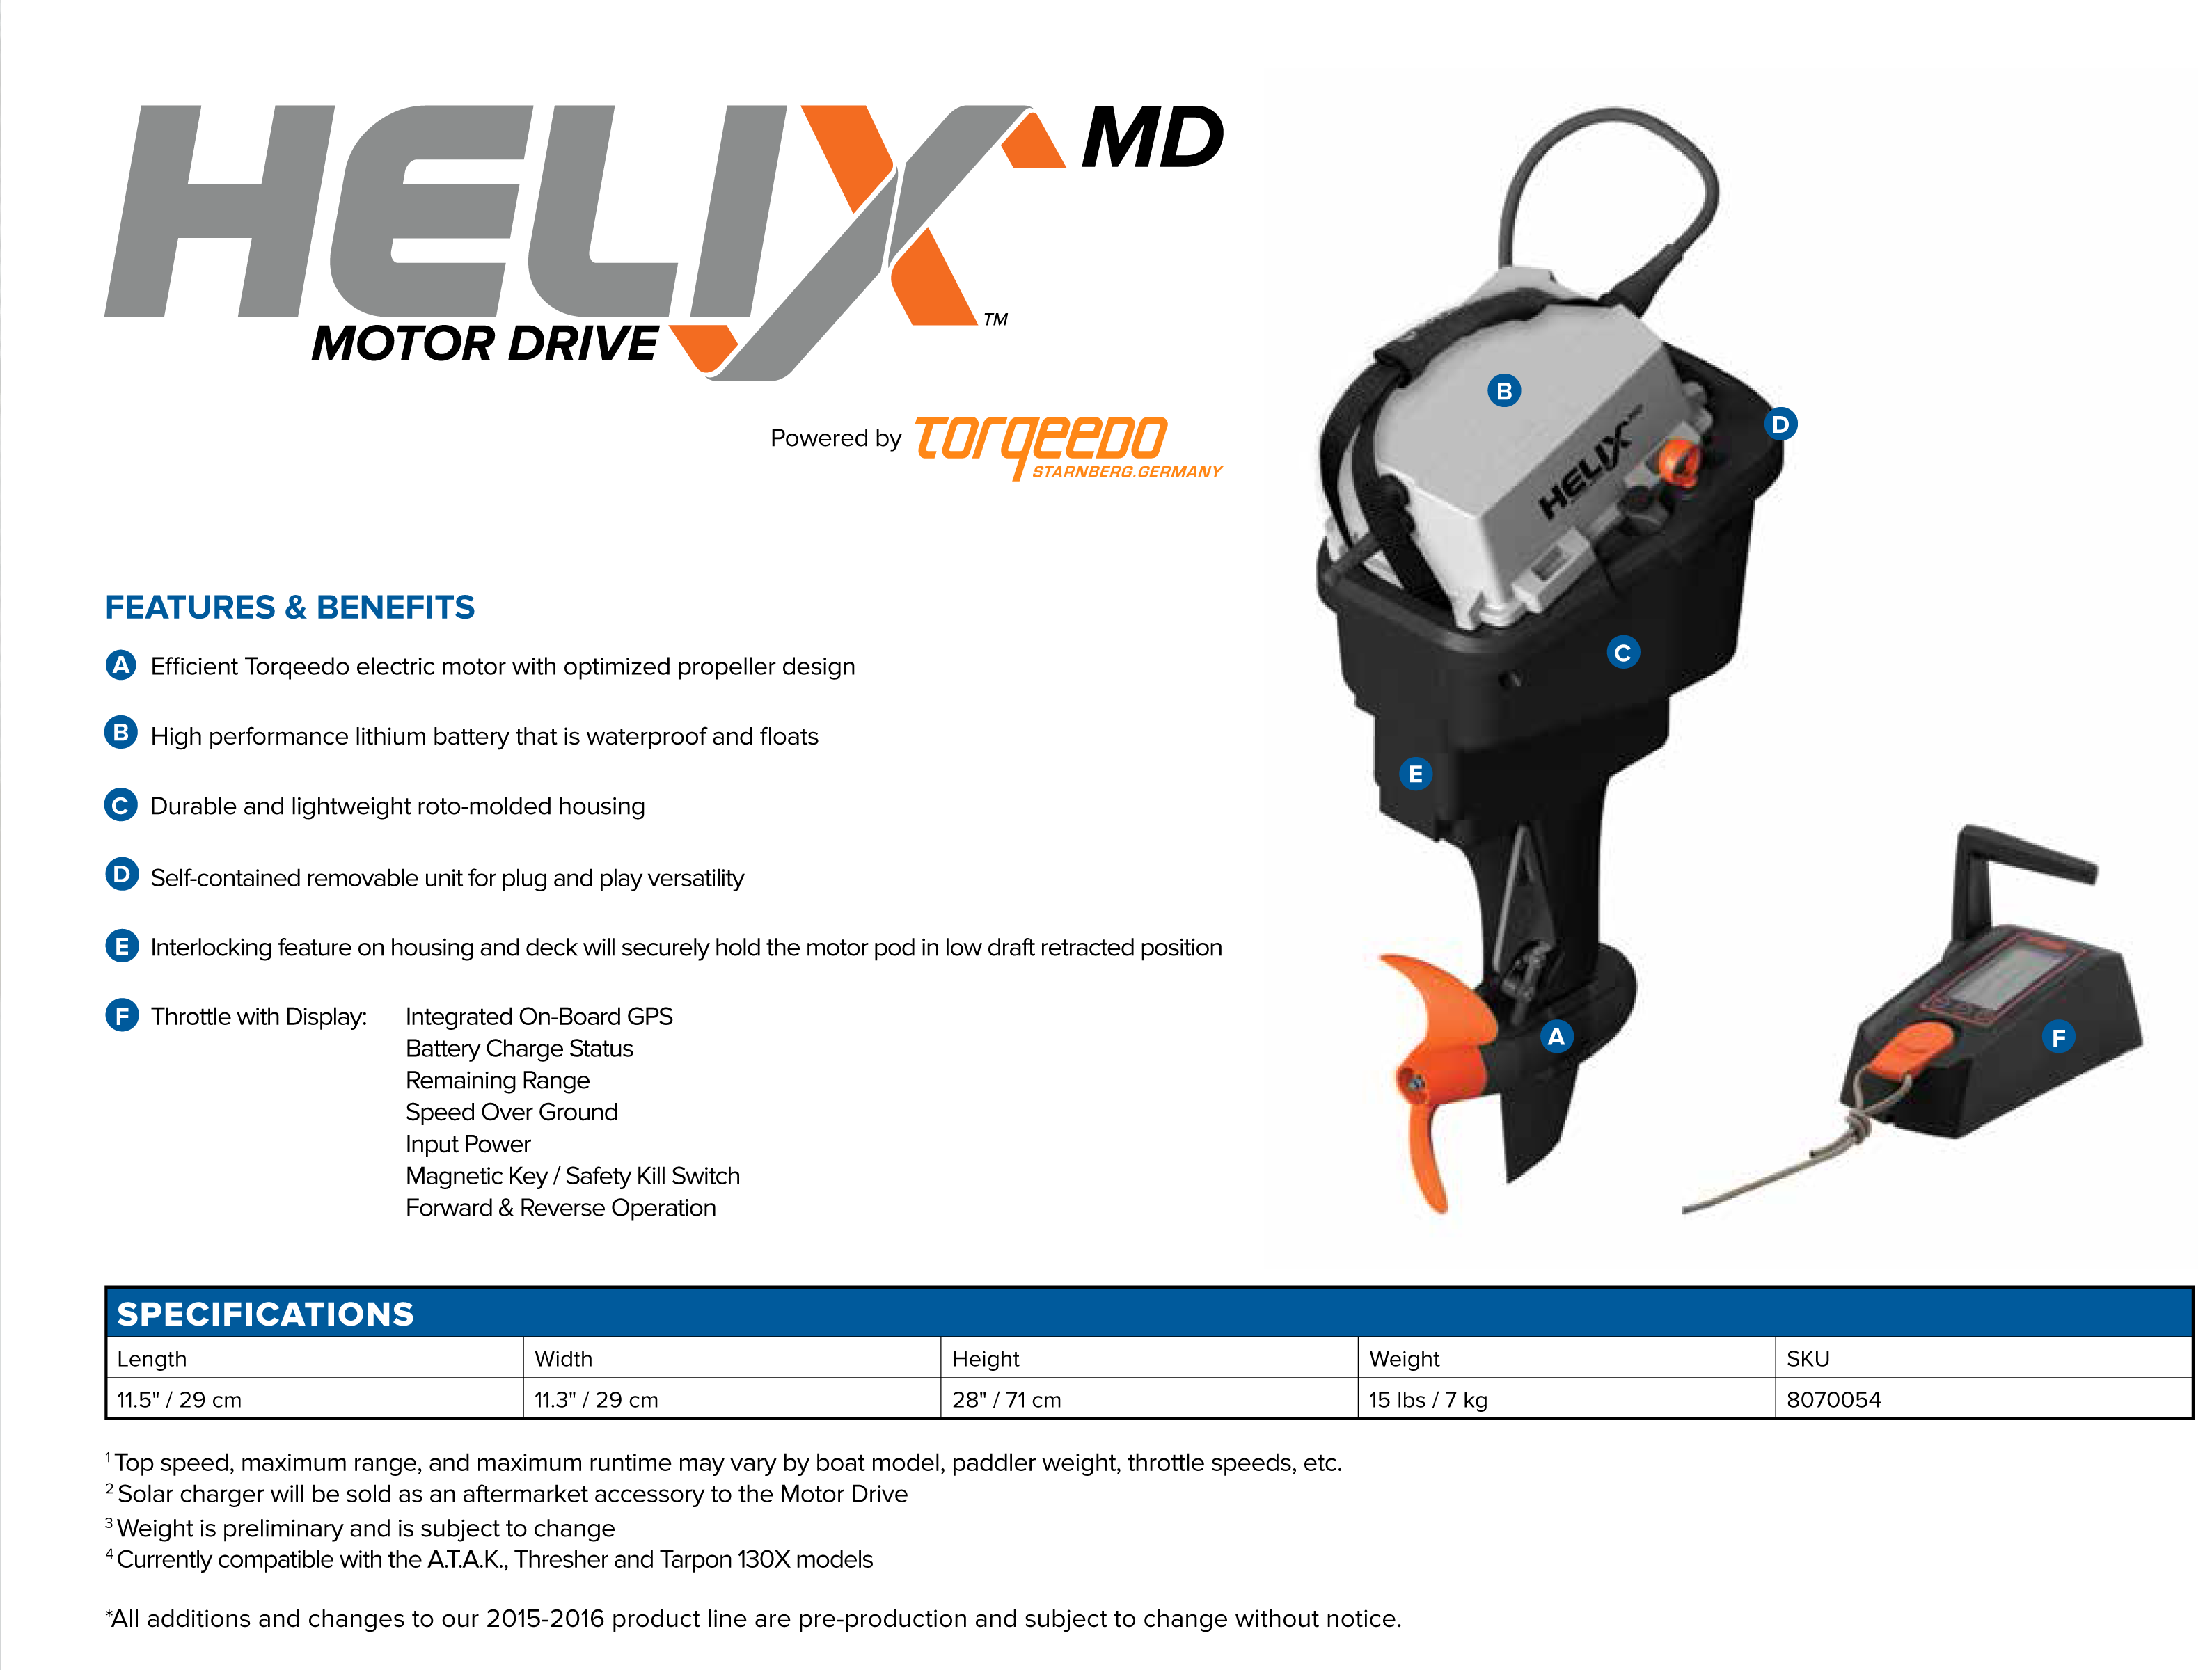 helix-md-specs-features.png